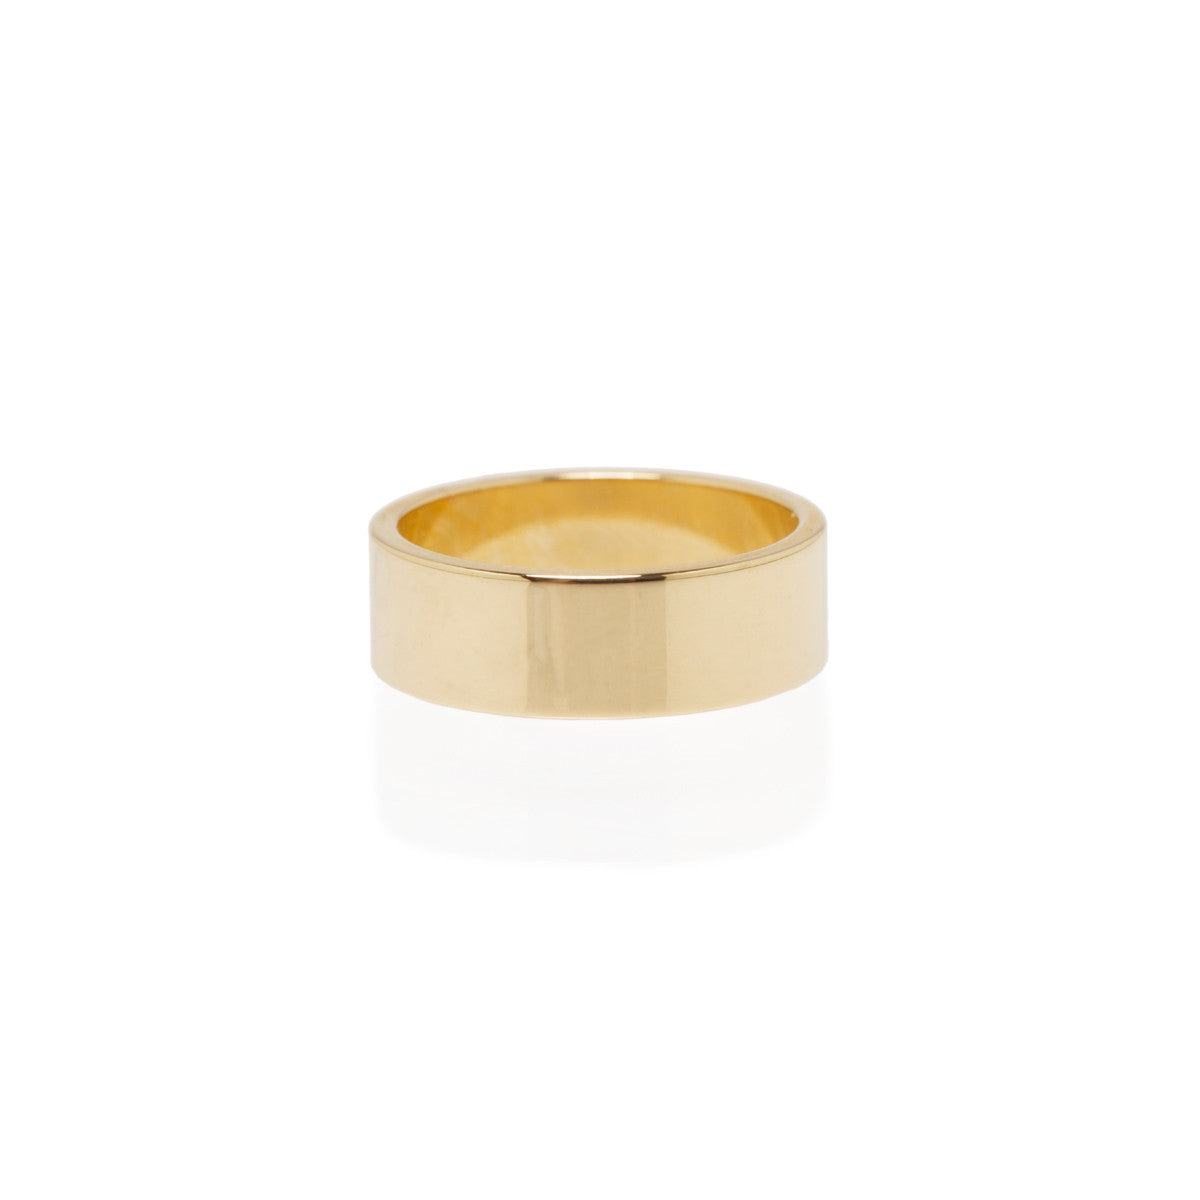 Zoë Chicco 14kt Yellow Gold 6mm Wide Flat Band Ring